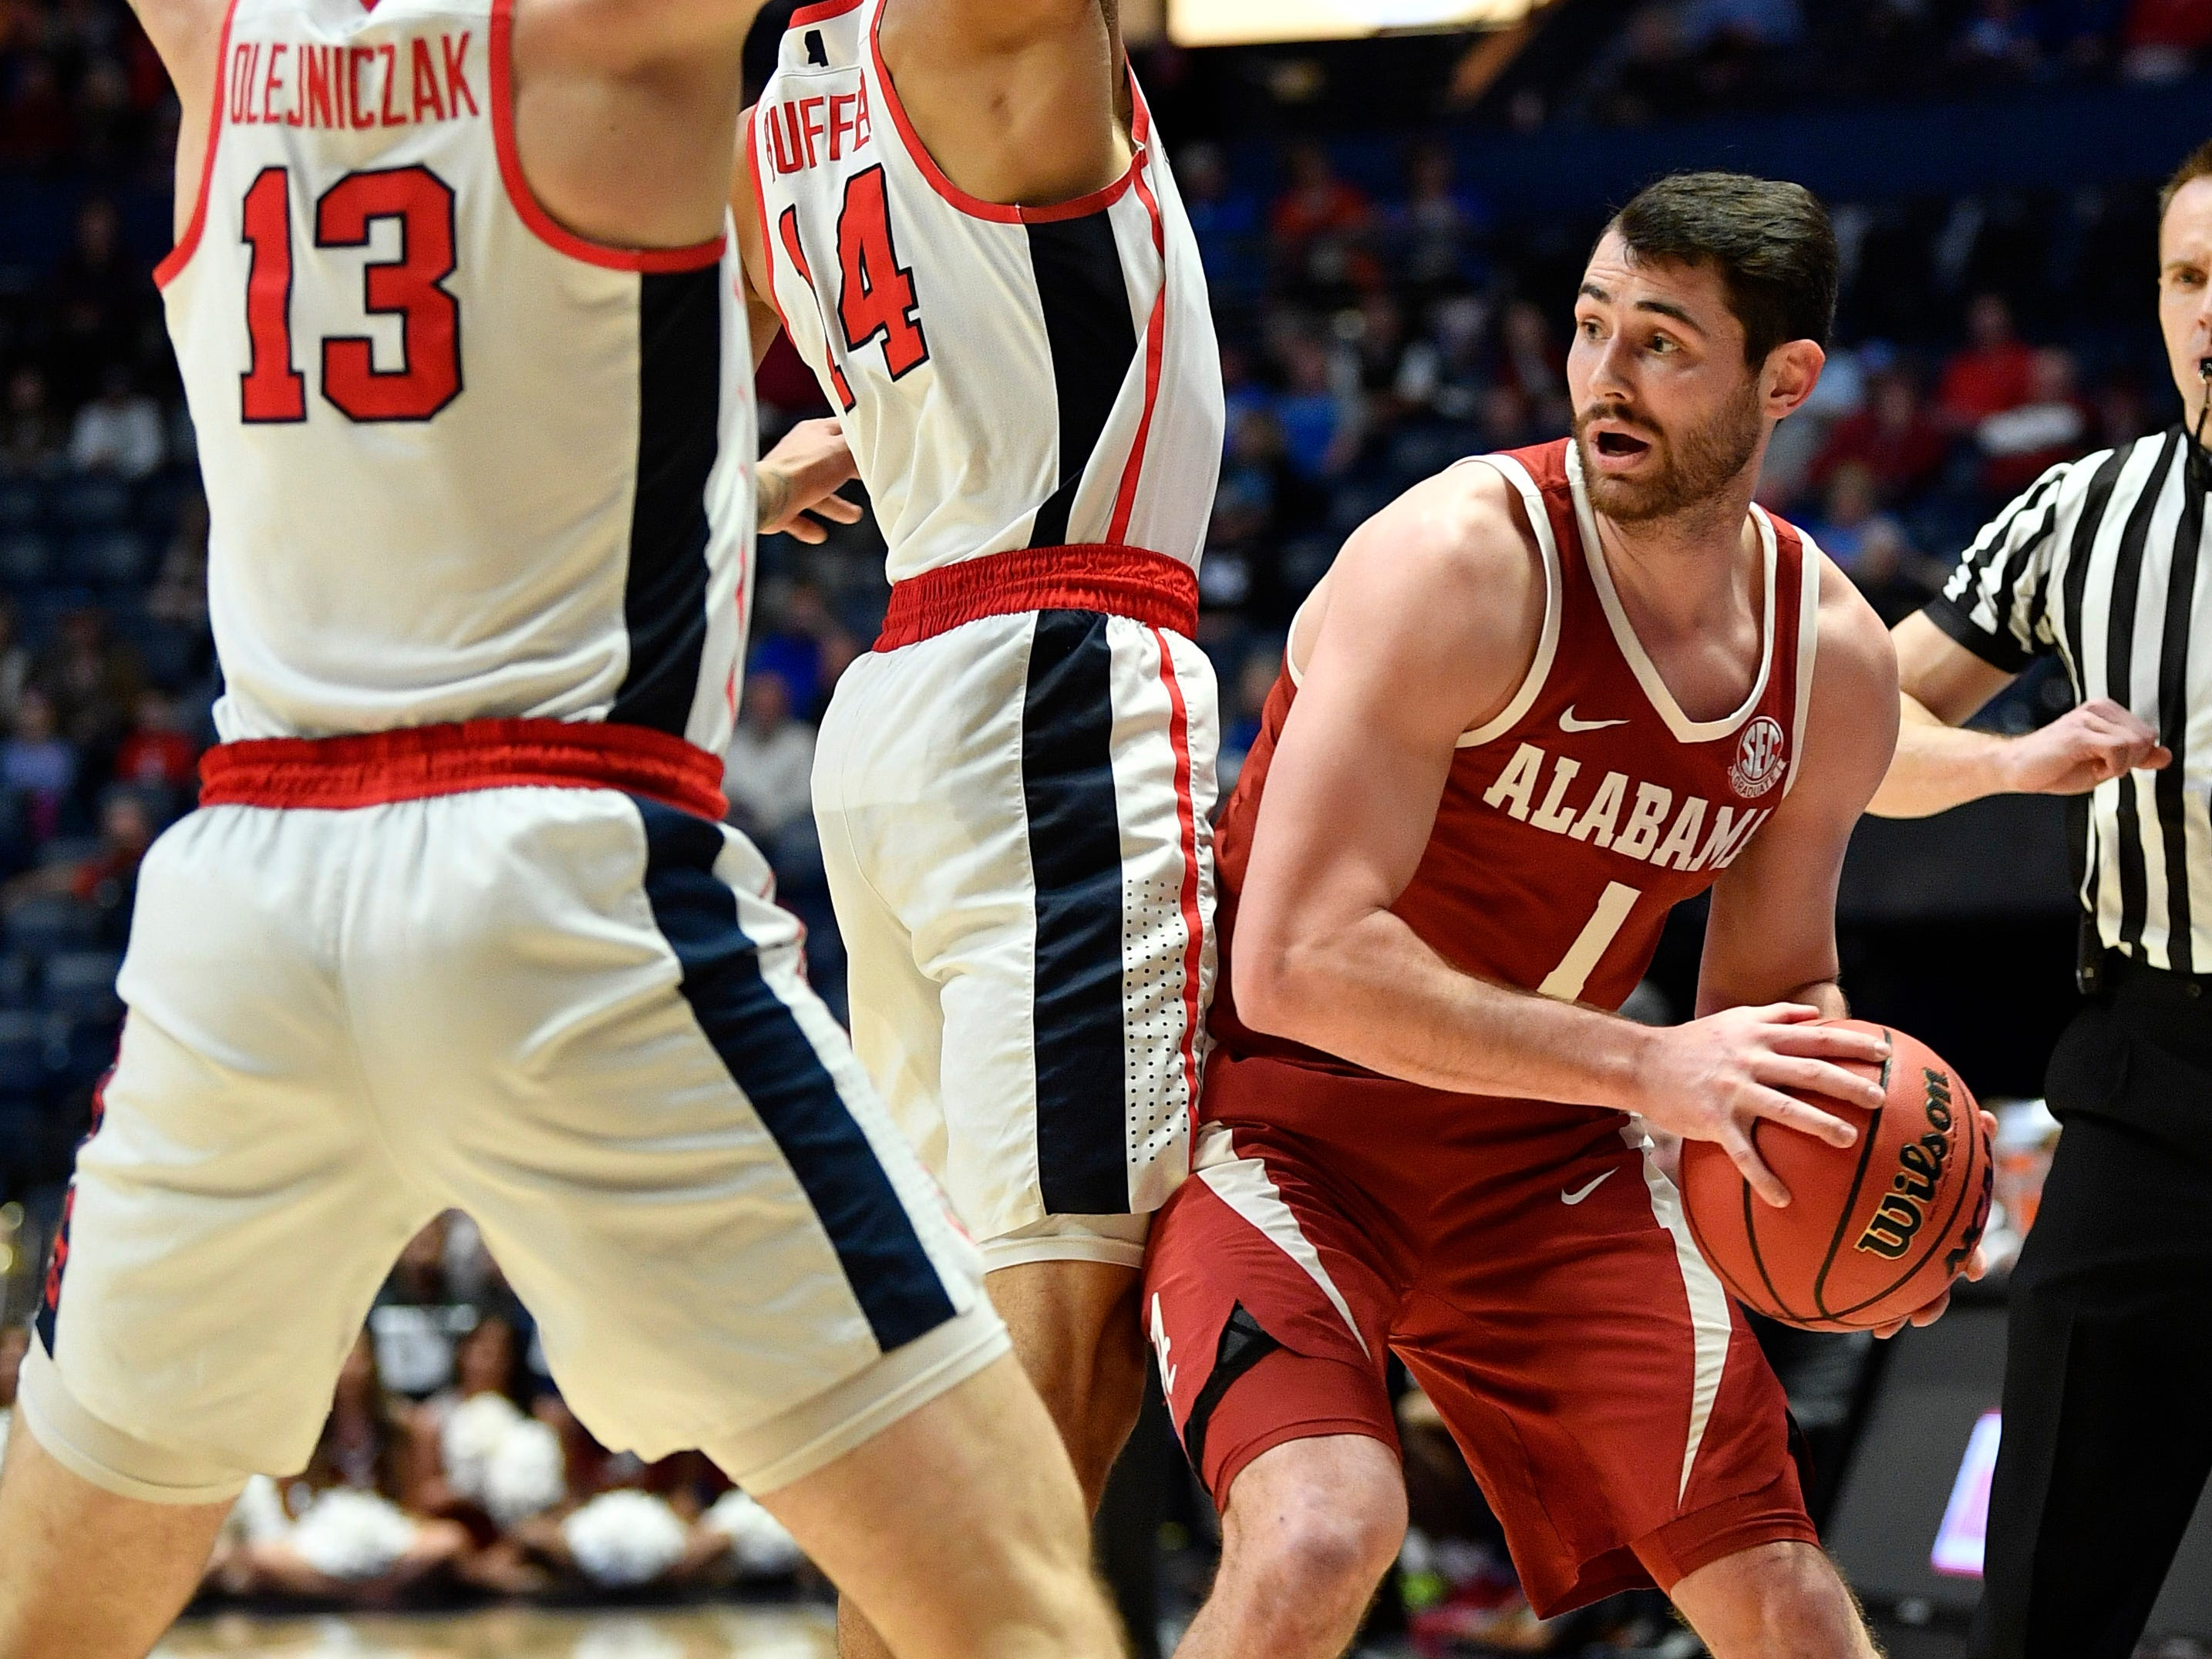 Alabama guard/forward Riley Norris (1) is defended by Ole Miss center Dominik Olejniczak (13) and forward KJ Buffen (14) during the first half of the SEC Men's Basketball Tournament game at Bridgestone Arena in Nashville, Tenn., Thursday, March 14, 2019.